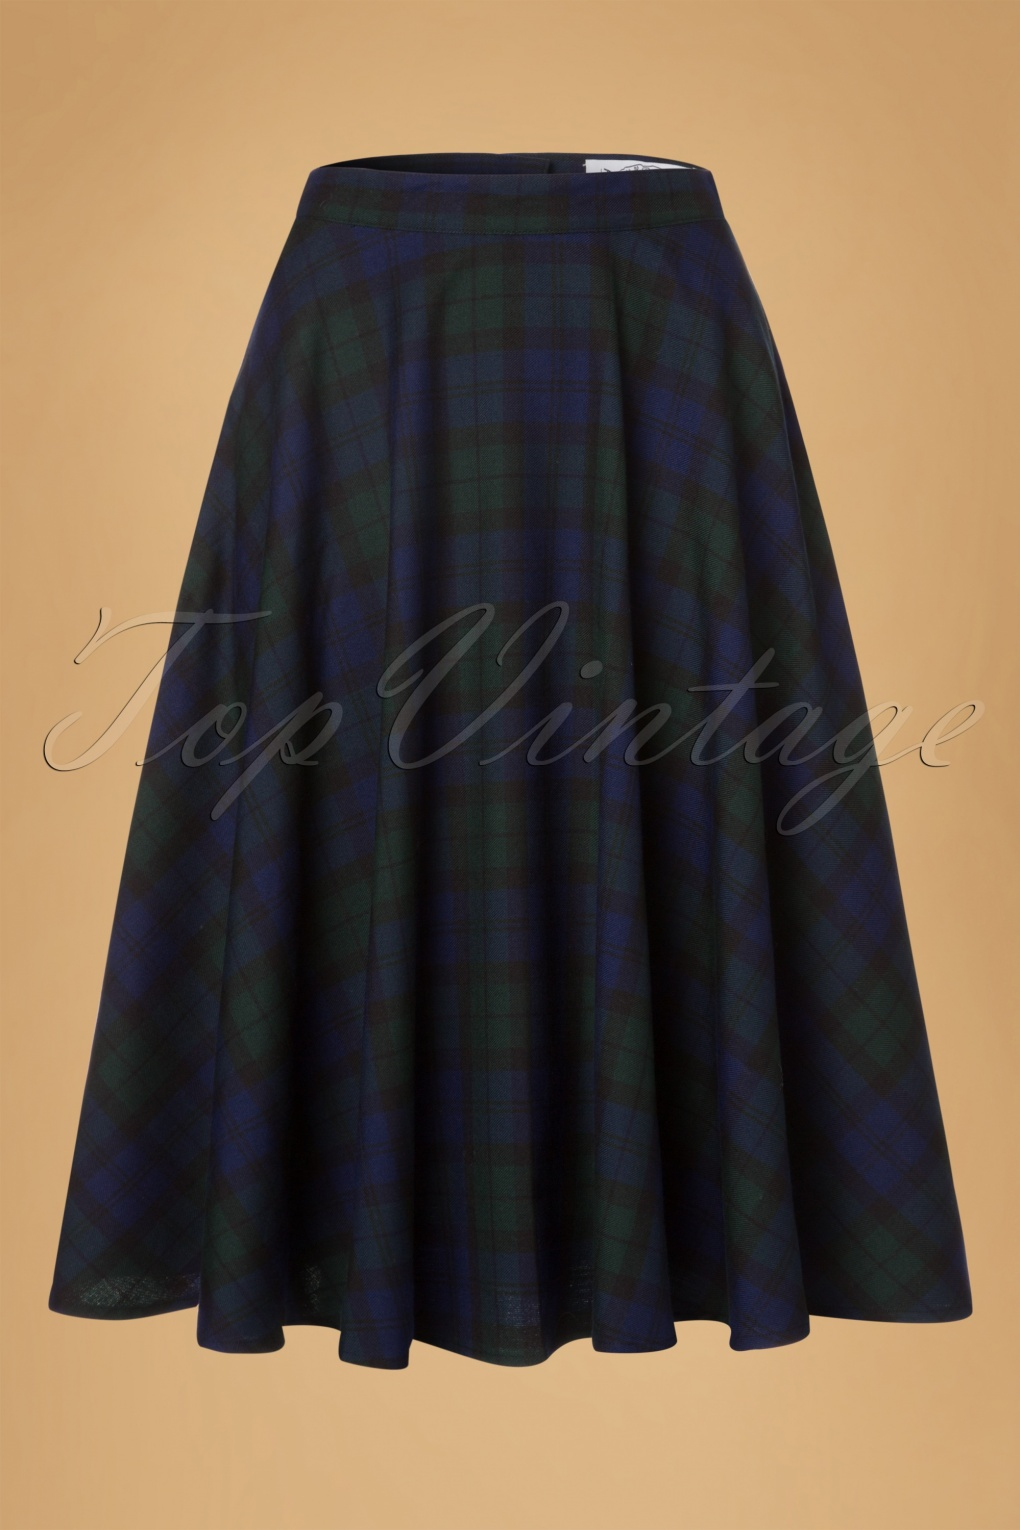 1950s Swing Skirt, Poodle Skirt, Pencil Skirts 50s Doralee Swing Skirt in Dublin Tartan £37.39 AT vintagedancer.com